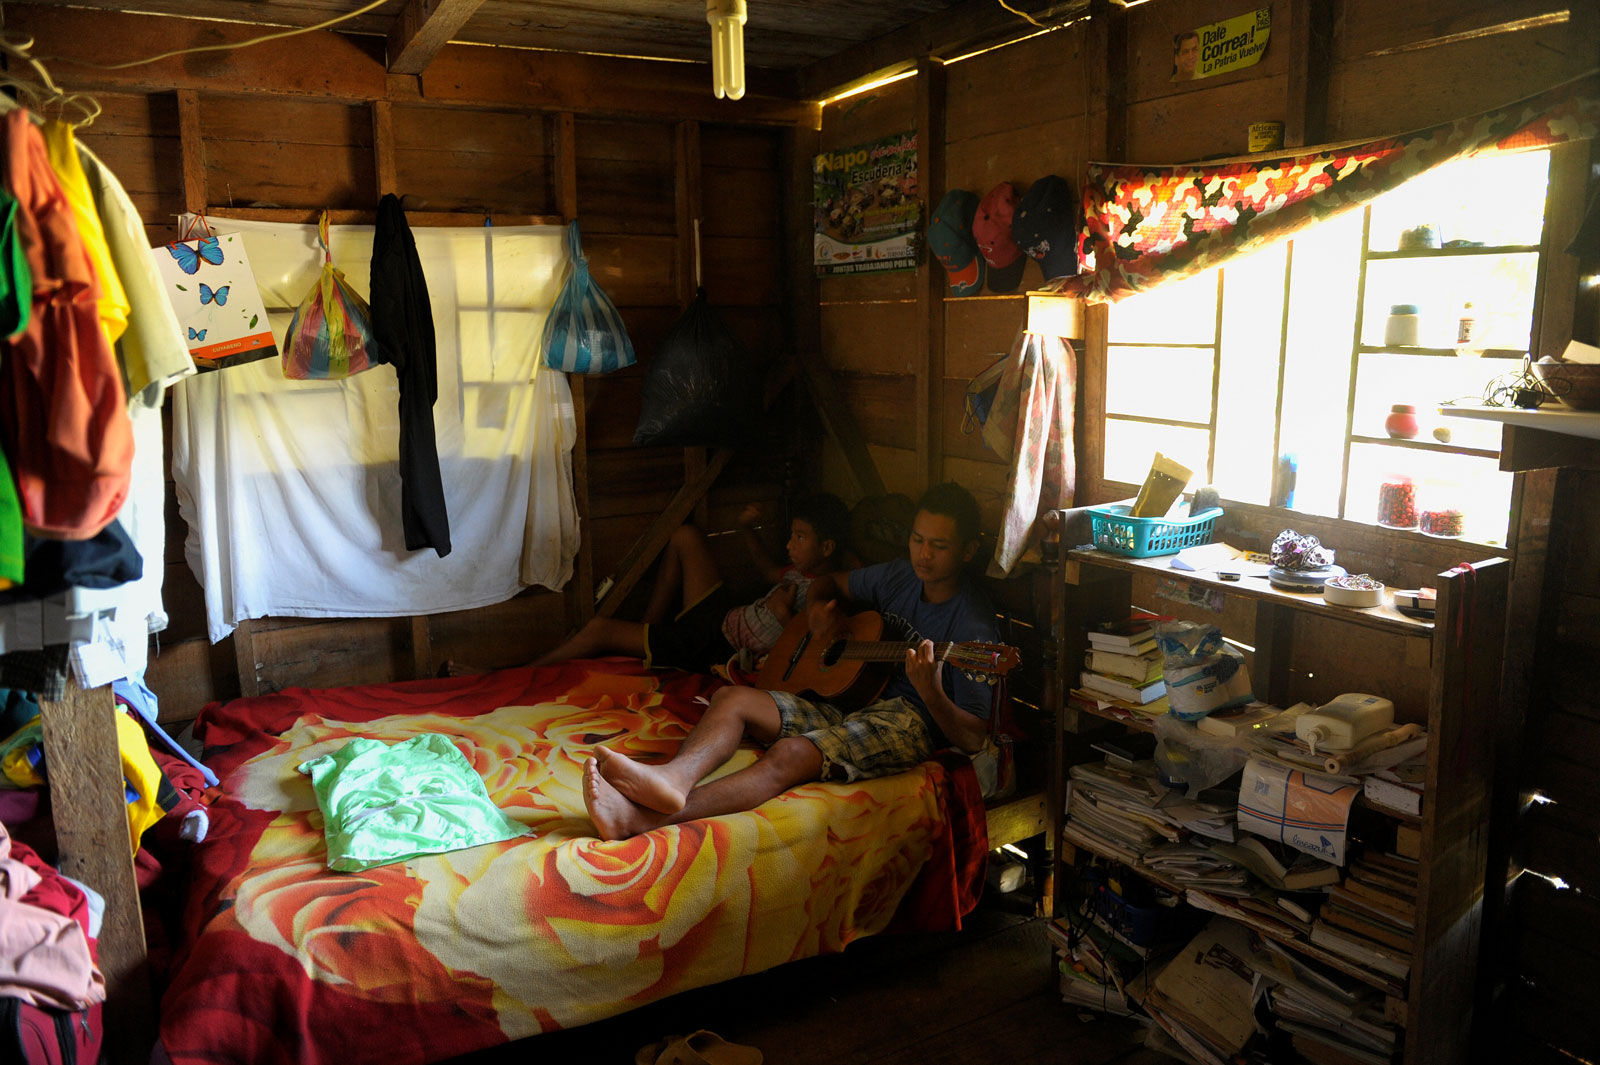 25 Stunning Photos of Rooms in the Developing World